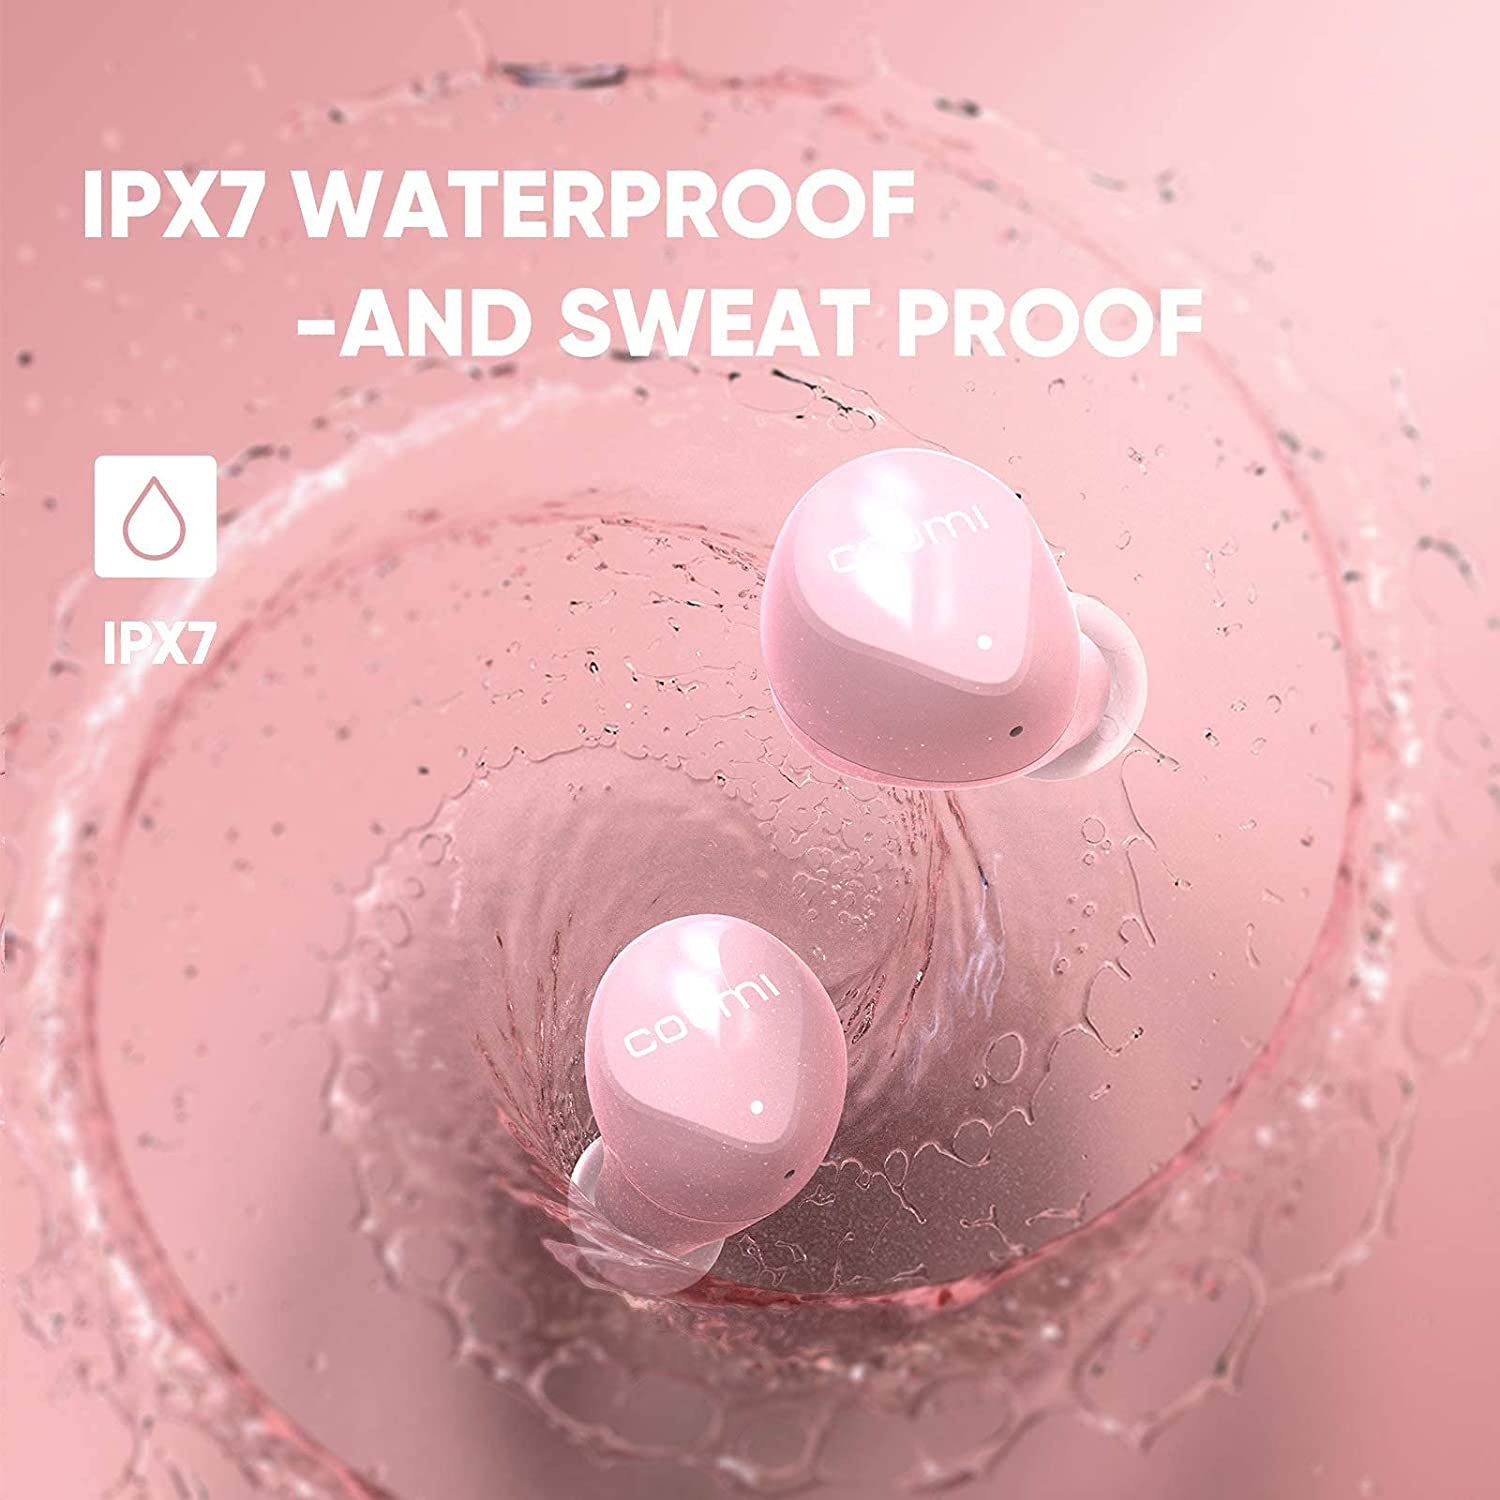 Wireless Earbuds,COUMI Bluetooth Earphones Stereo in-Ear Headphones Built-in Mic Headset Touch Control w/EQ,30 Hours Playtime w/Charging Case,IPX7 Waterproof for Running Workout,Pink